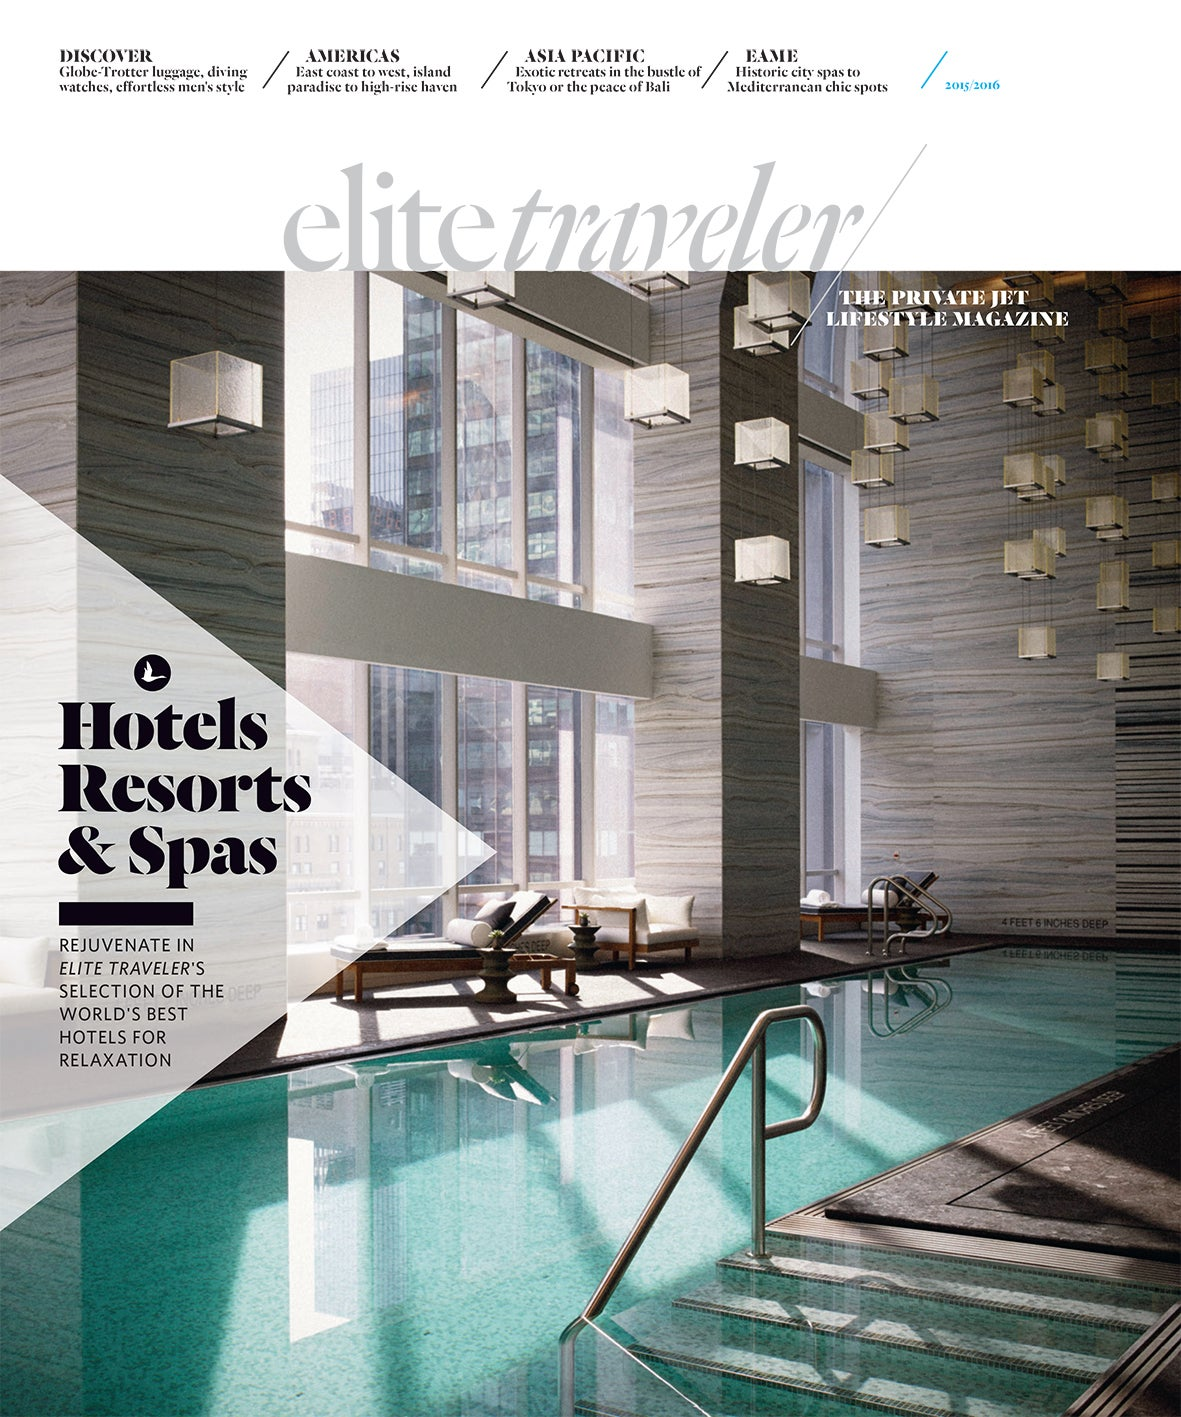 Hotels resorts spas 2015 elite traveler for 50 best boutique hotels in the med by the times 2015